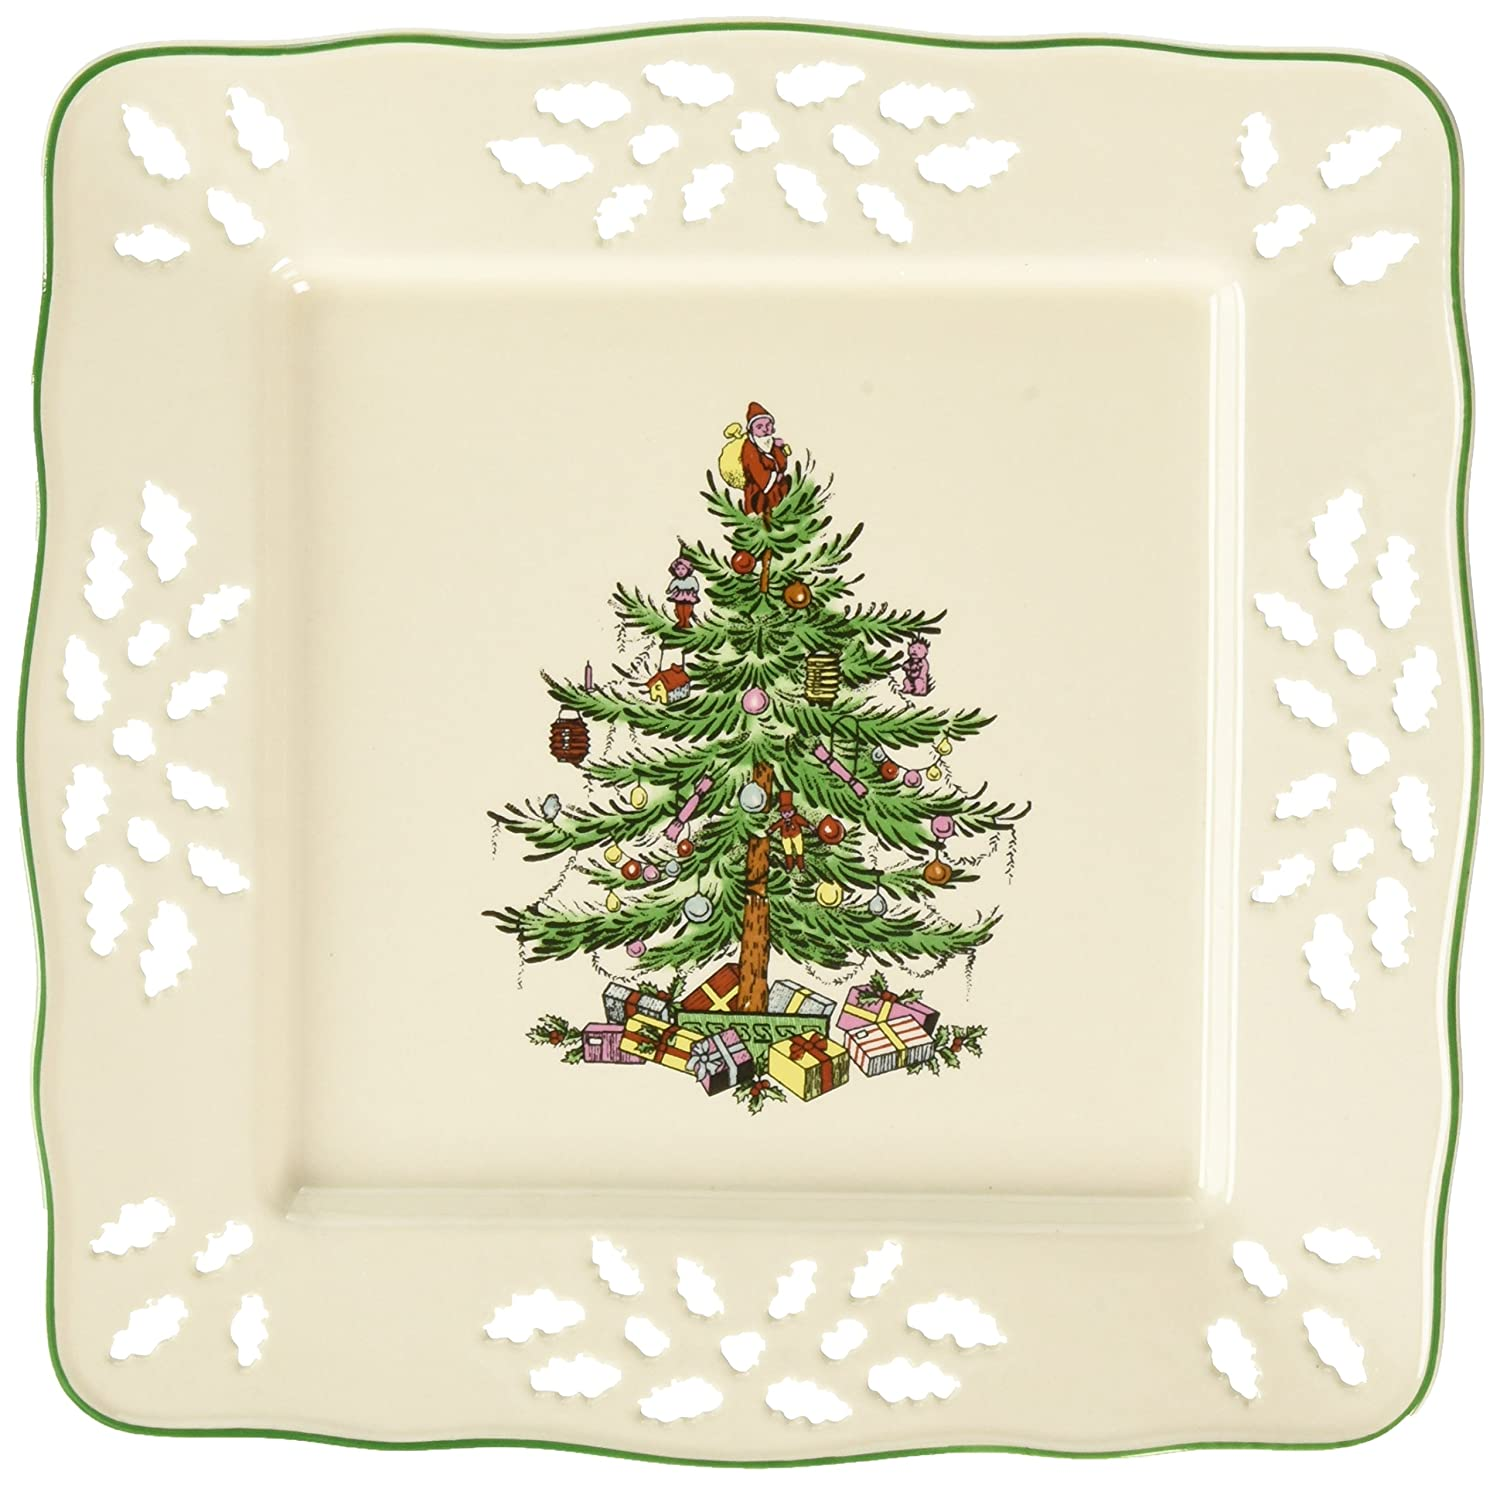 Spode Christmas Tree Pierced Heart Tray, 7-Inch Portmeirion USA 1512696